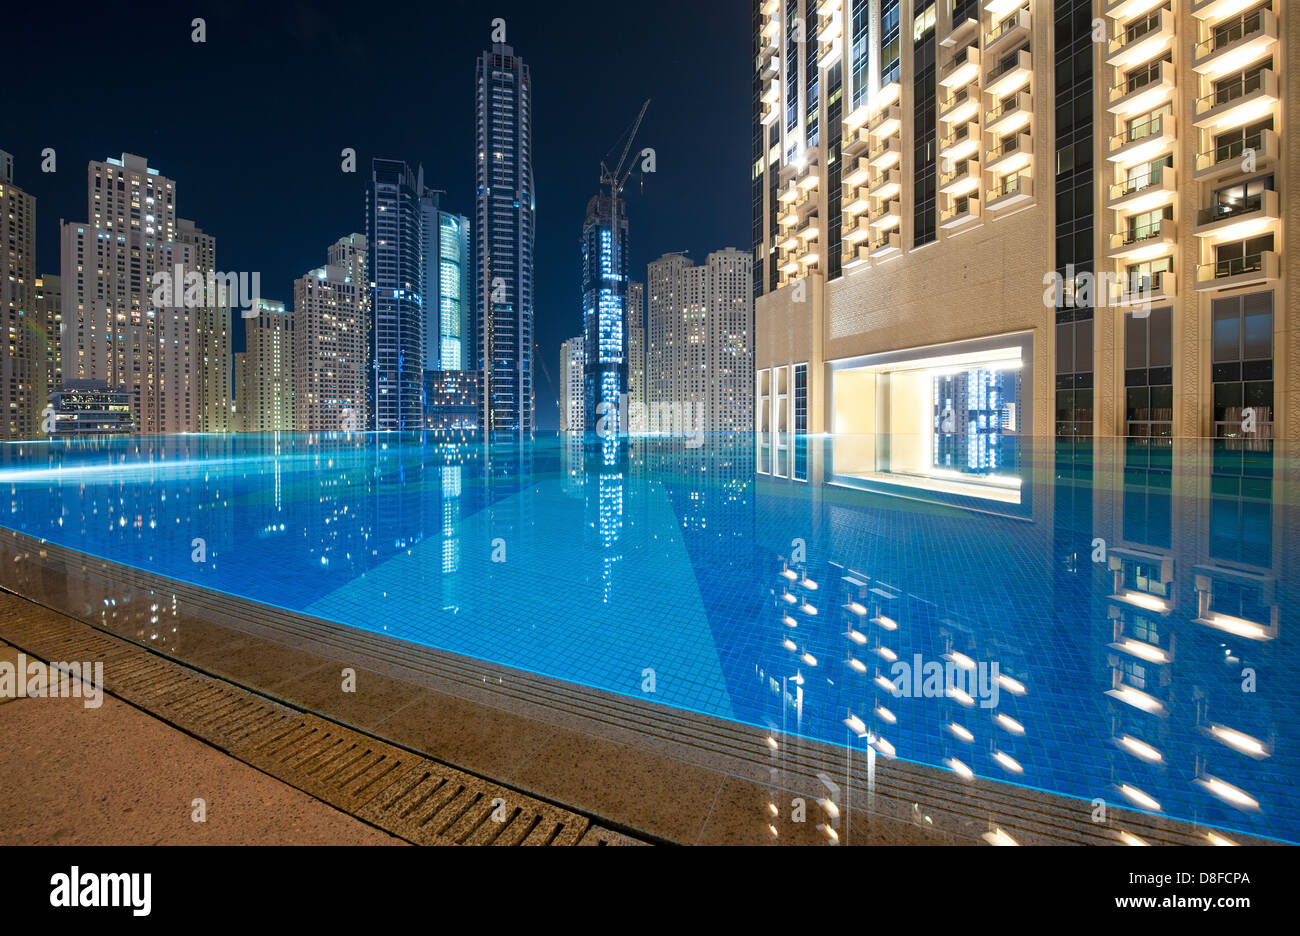 View Of Dubai Marina From The Pool Bar Of The Address Hotel Dubai Stock Photo Royalty Free